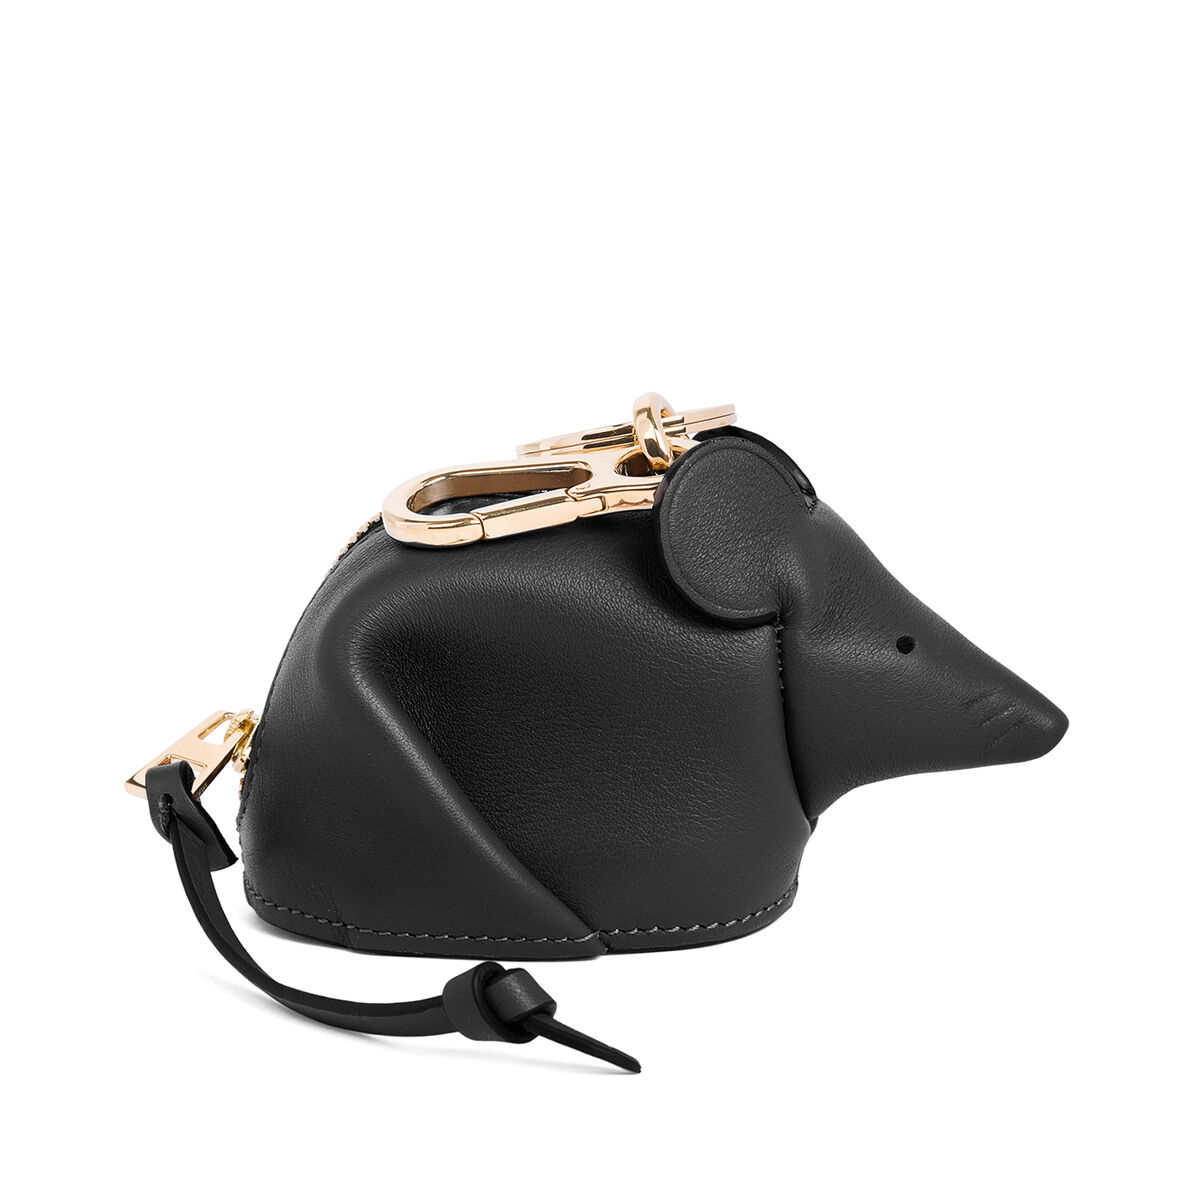 white mouse leather bag charm Loewe Pictures Online Free Shipping Amazing Price eNzrE